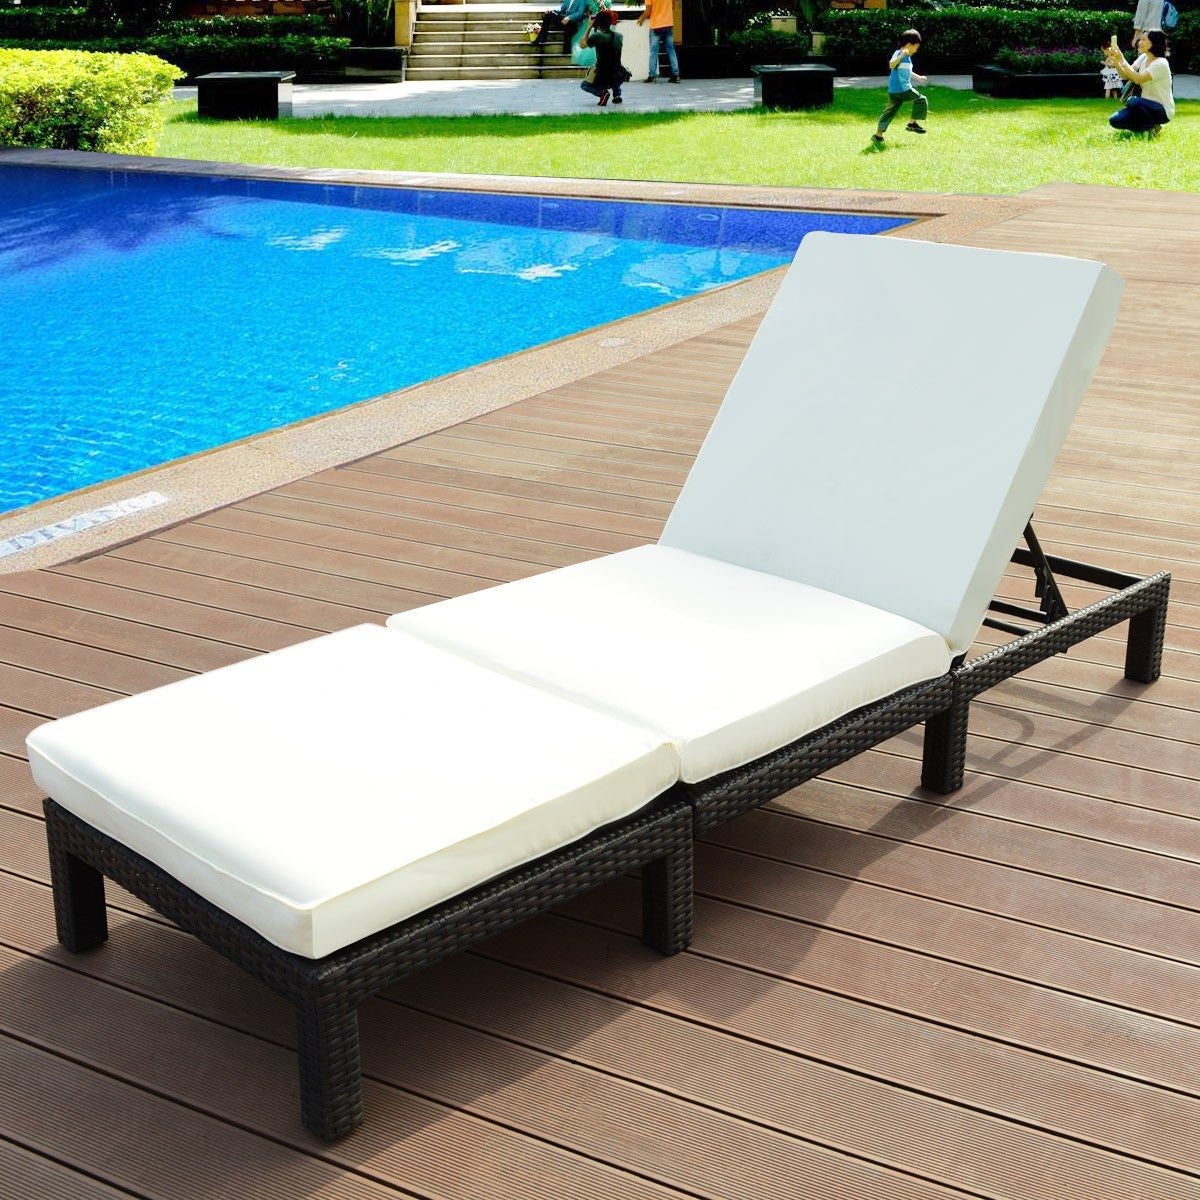 Modern Home Wailea Woven Rattan Loungers Regarding Well Known Costway Patio Adjustable Wicker Chaise Lounge Poolside Couch Furniture With Cushion (Gallery 3 of 25)